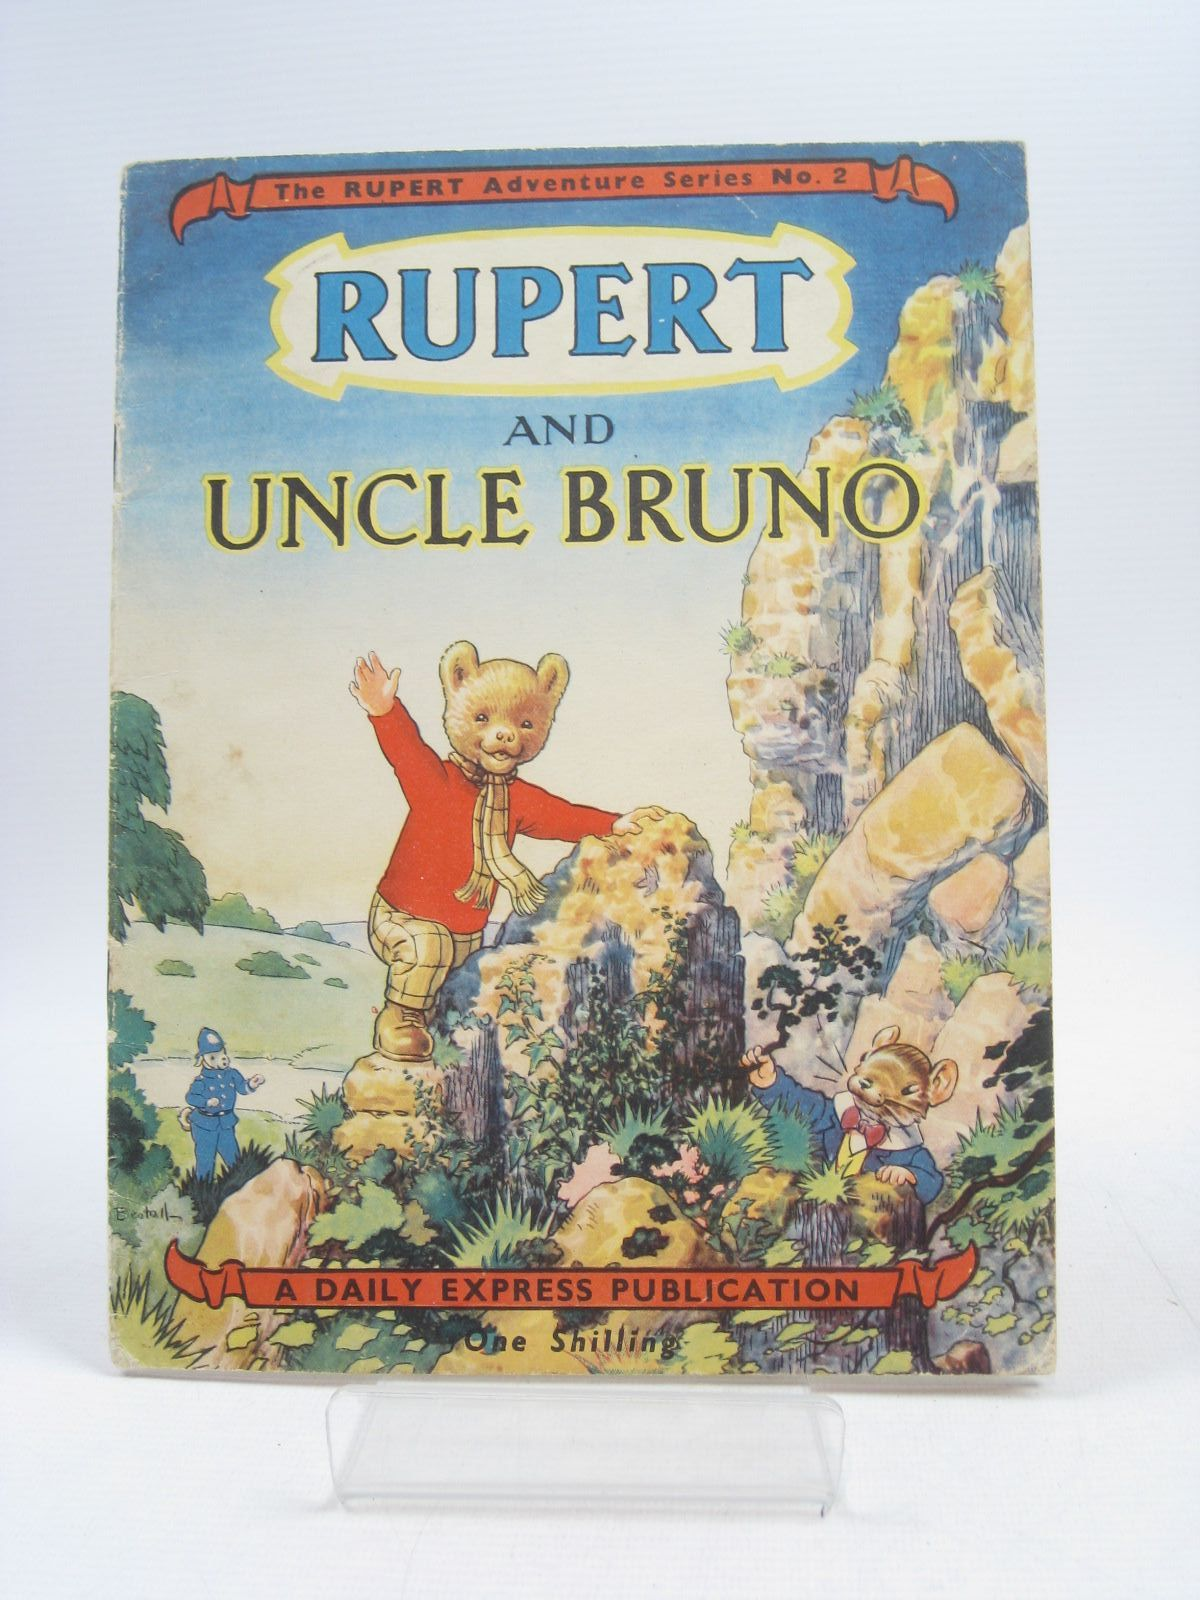 Photo of RUPERT ADVENTURE SERIES No. 2 - RUPERT AND UNCLE BRUNO written by Bestall, Alfred illustrated by Bestall, Alfred published by Daily Express (STOCK CODE: 1403911)  for sale by Stella & Rose's Books